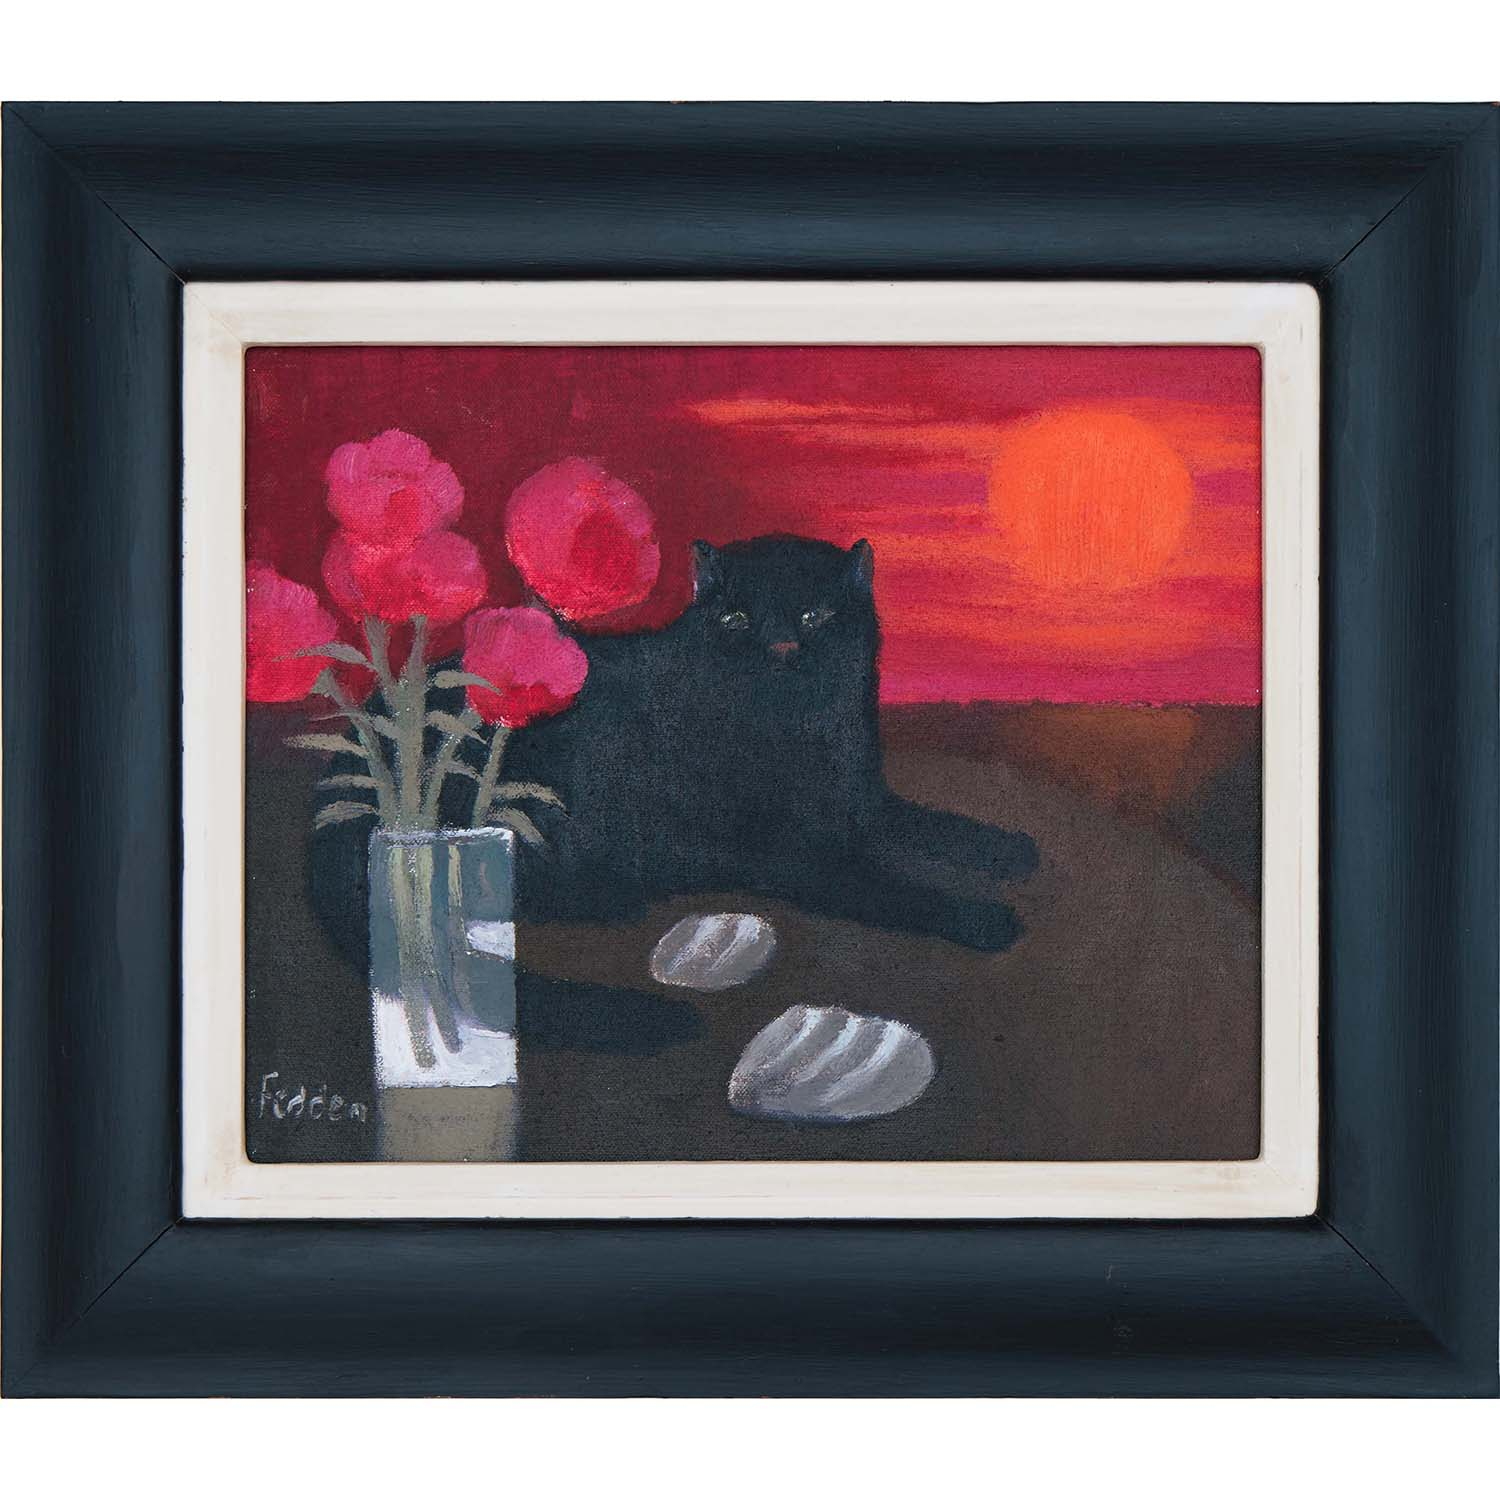 mary-fedden-cat-in-red-sunset-frame